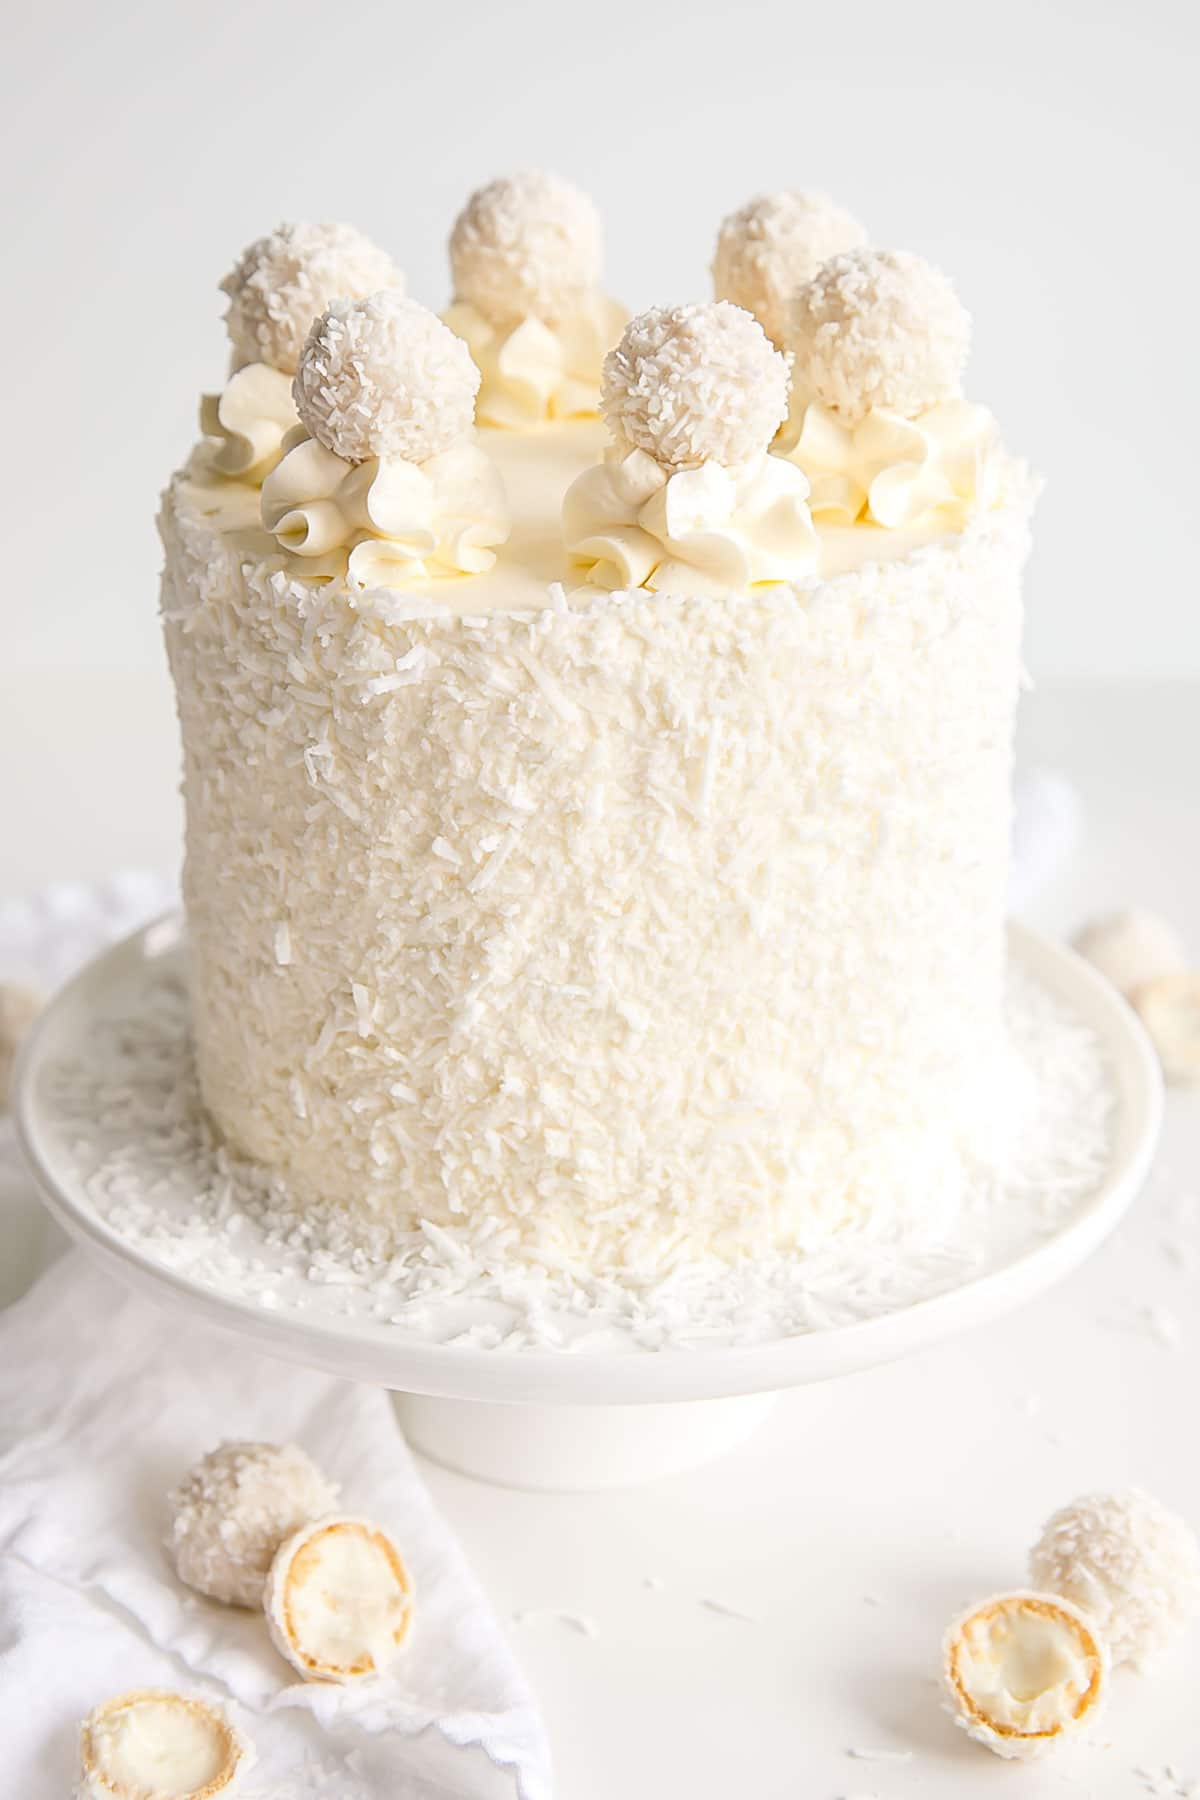 Raffaello cake with Swiss meringue buttercream.